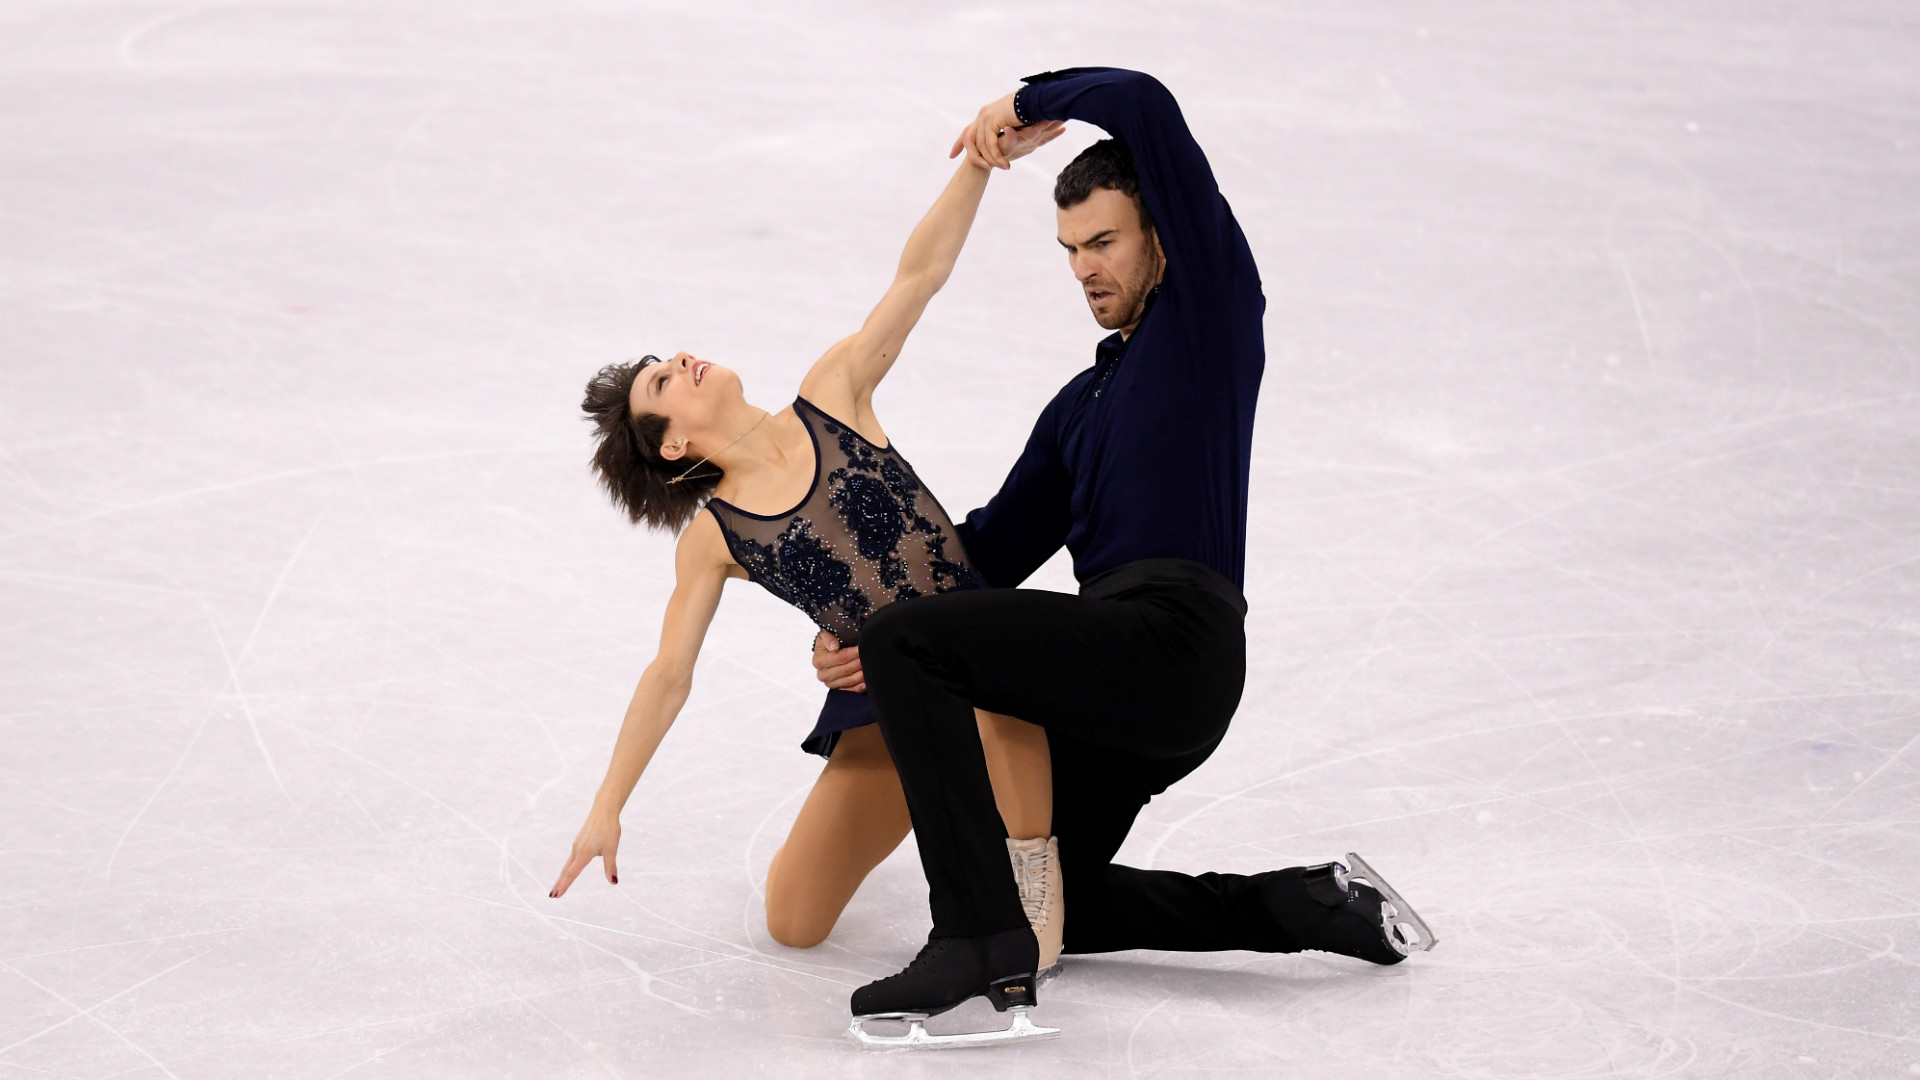 Figure skaters rocking now that Olympics allows lyrics in soundtracks